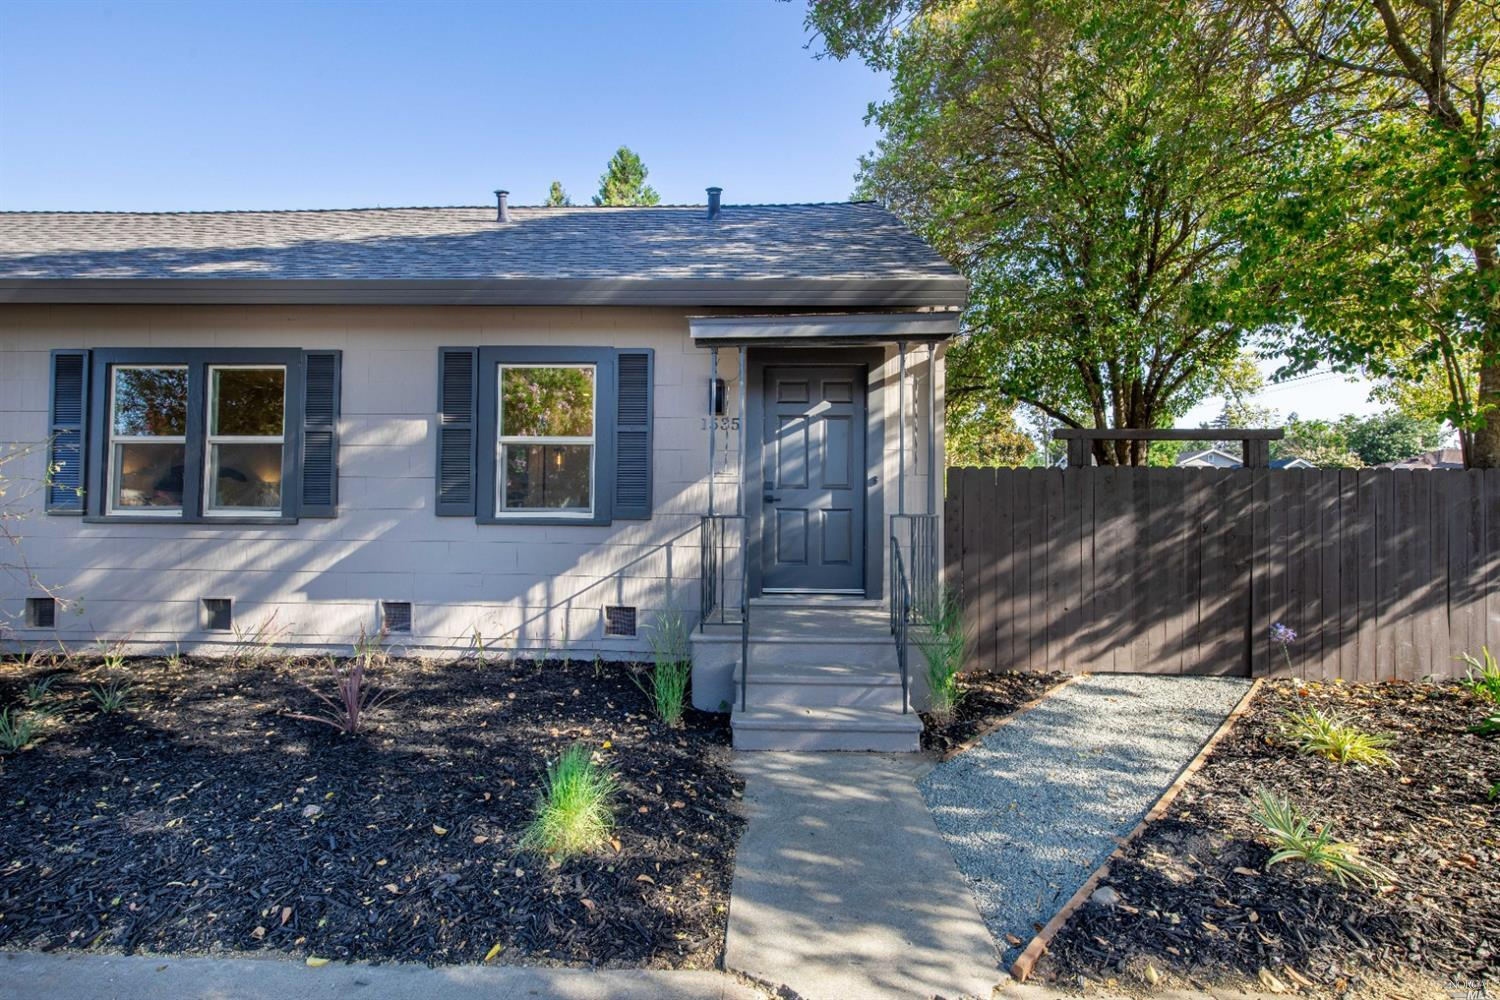 Napa living at its finest! This beautifully renovated single level two bedroom, one bathroom duplex is just minutes from Downtown Napa.  All new appliances including washer, dryer, refrigerator, dishwasher, gas range and microwave. Refinished hardwood floors, beautifully updated kitchen with quartz countertops, air conditioning, single car garage and landscaped backyard. Call today to schedule your showing.